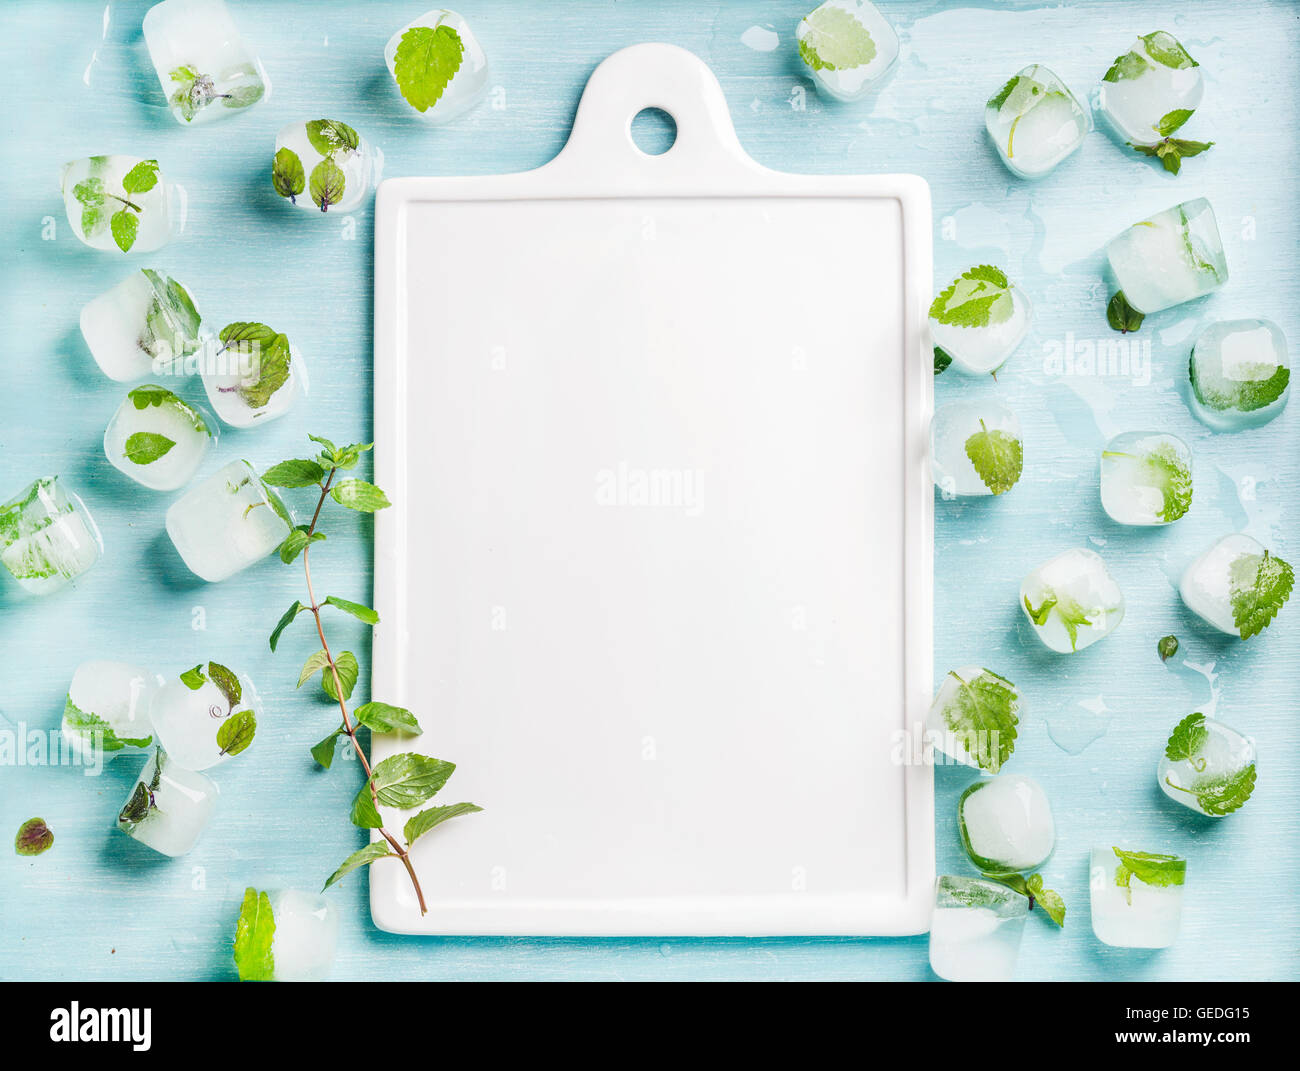 Ice cubes with frozen mint leaves inside on blue Turquoise background and white ceramic board in center, copy space - Stock Image